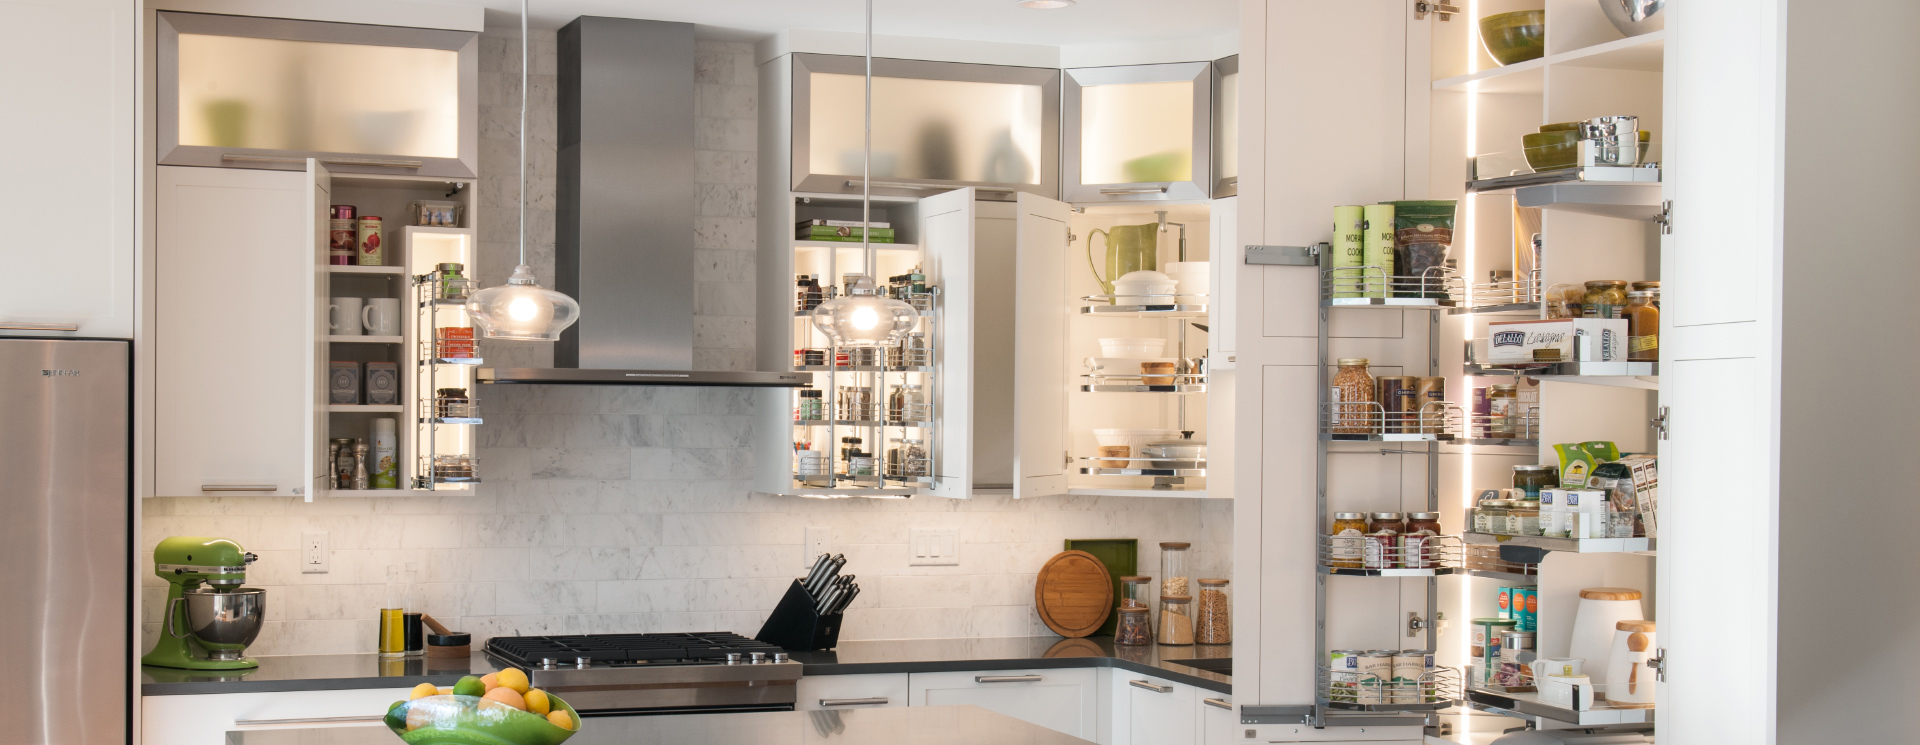 How to Get the Most Storage Out of Your Kitchen